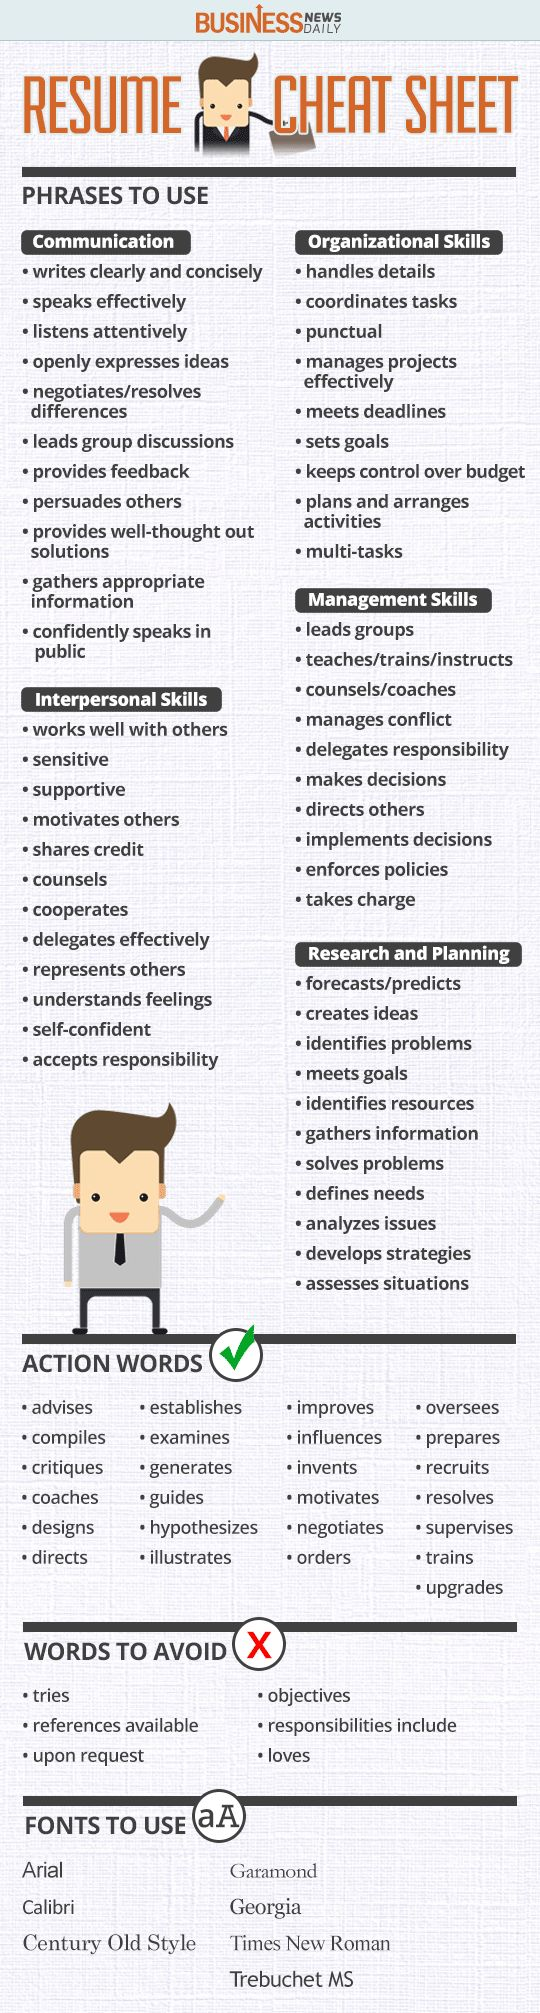 Opposenewapstandardsus  Personable  Ideas About Resume On Pinterest  Cv Format Resume Cv And  With Outstanding Resume Cheat Sheet Infographic Andrews Almost Done With A Complete Unit On Employment Which With Appealing How Many Pages Should My Resume Be Also Types Of Skills For Resume In Addition Excel Vba On Error Resume Next And How To Put A Resume Together As Well As Resume On Microsoft Word Additionally What Should I Name My Resume From Pinterestcom With Opposenewapstandardsus  Outstanding  Ideas About Resume On Pinterest  Cv Format Resume Cv And  With Appealing Resume Cheat Sheet Infographic Andrews Almost Done With A Complete Unit On Employment Which And Personable How Many Pages Should My Resume Be Also Types Of Skills For Resume In Addition Excel Vba On Error Resume Next From Pinterestcom